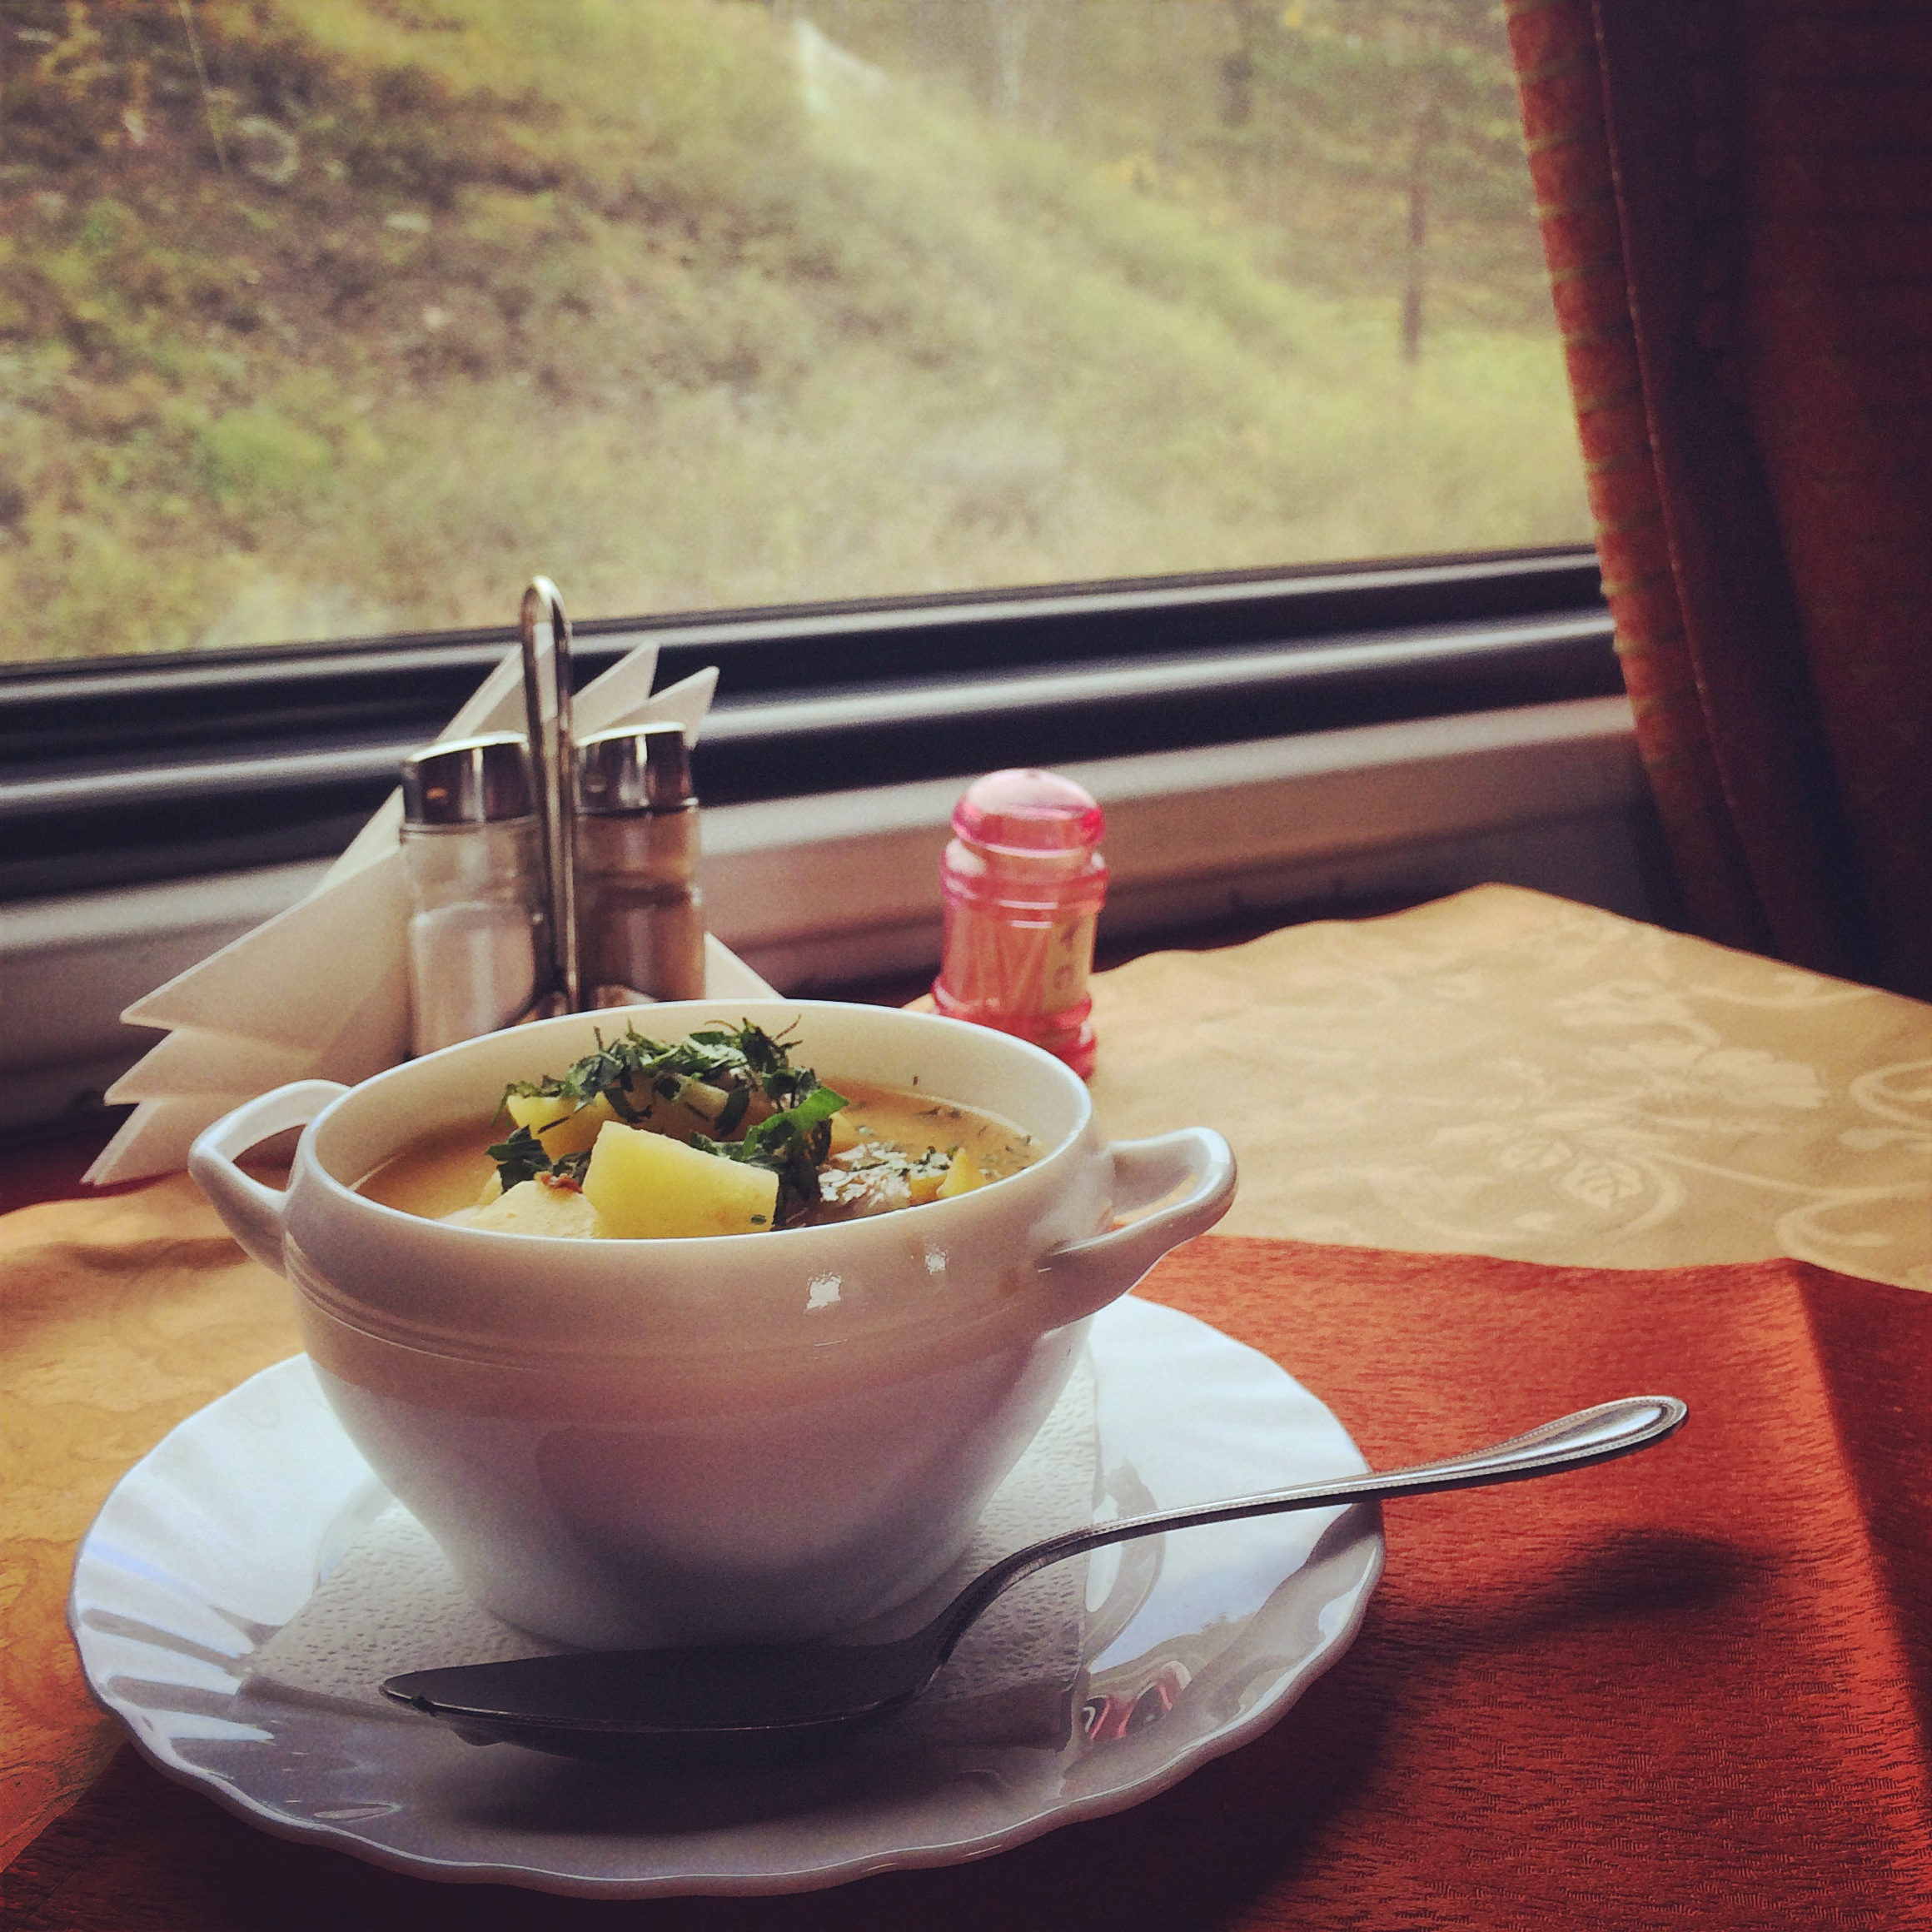 Video: What To Eat While On The Transmongolian Railway